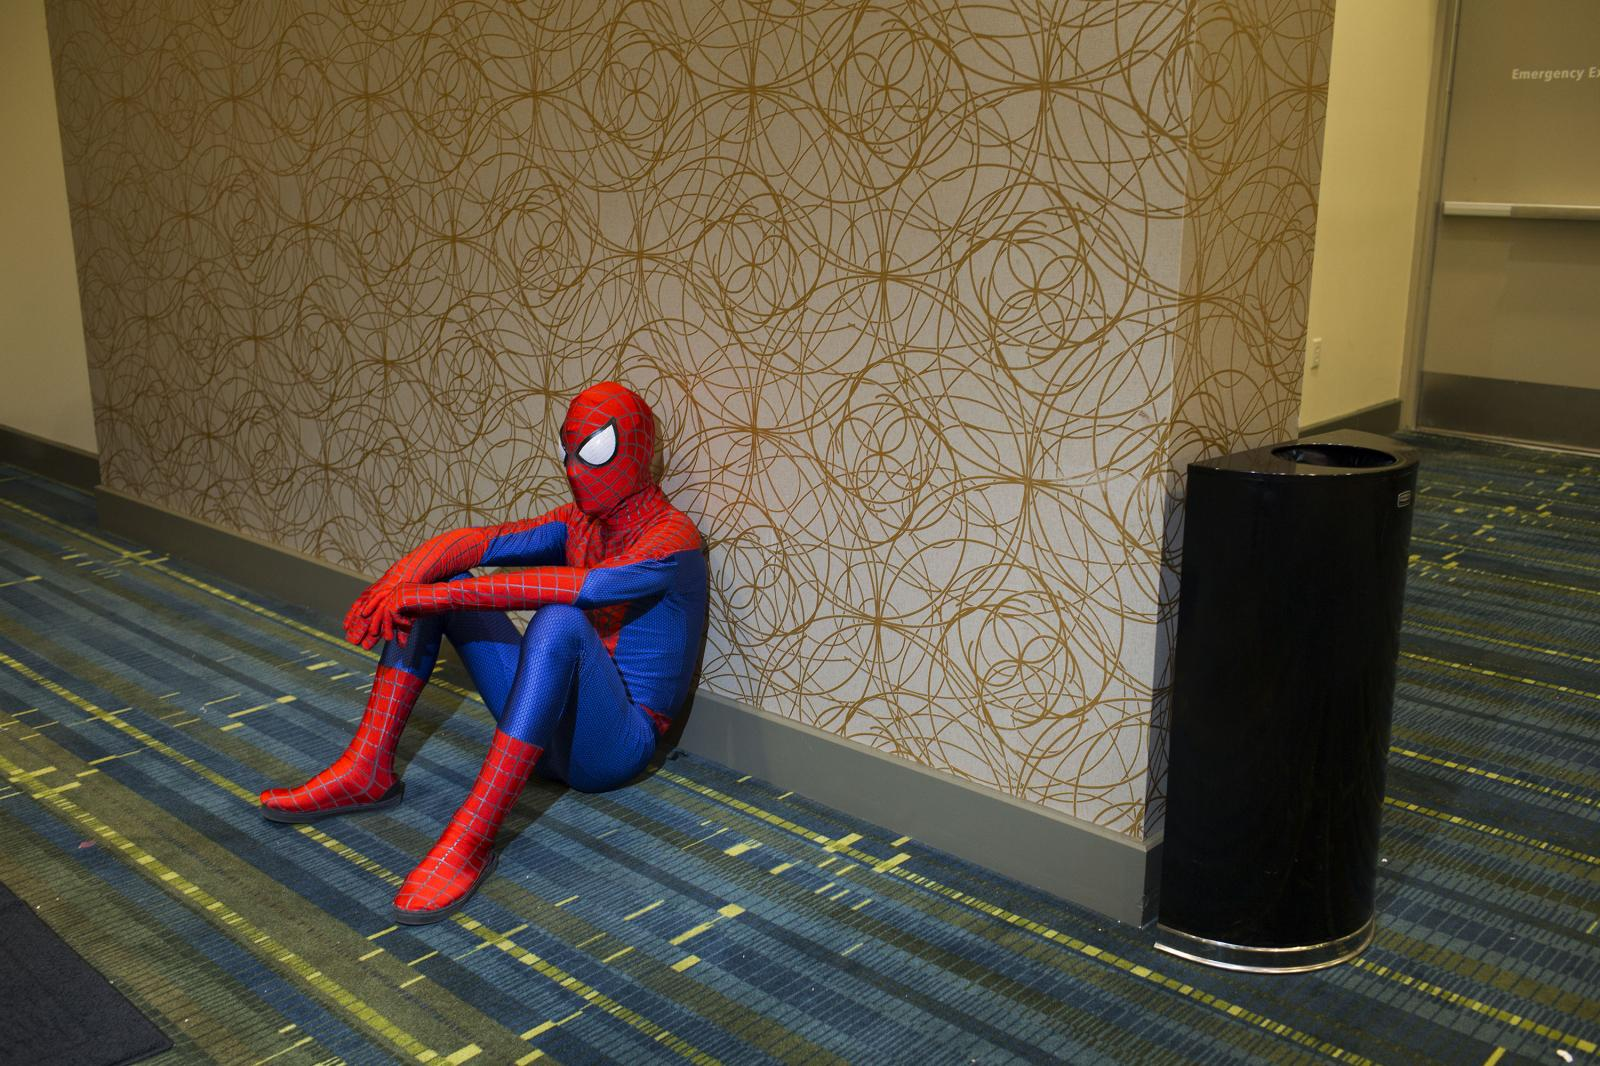 Dan Locklin of Cedar Rapids, dressed as Spiderman, takes a break during Cedar Rapids Comic Con at the Cedar Rapids DoubleTree Hotel & Convention Center on Saturday, February 3, 2018. Locklin is part of CRUSH, or Cedar Rapids Ultimate Super Heroes, a group offering free photos with suggested donations benefiting the Cedar Valley Humane Society. KC McGinnis / The Gazette